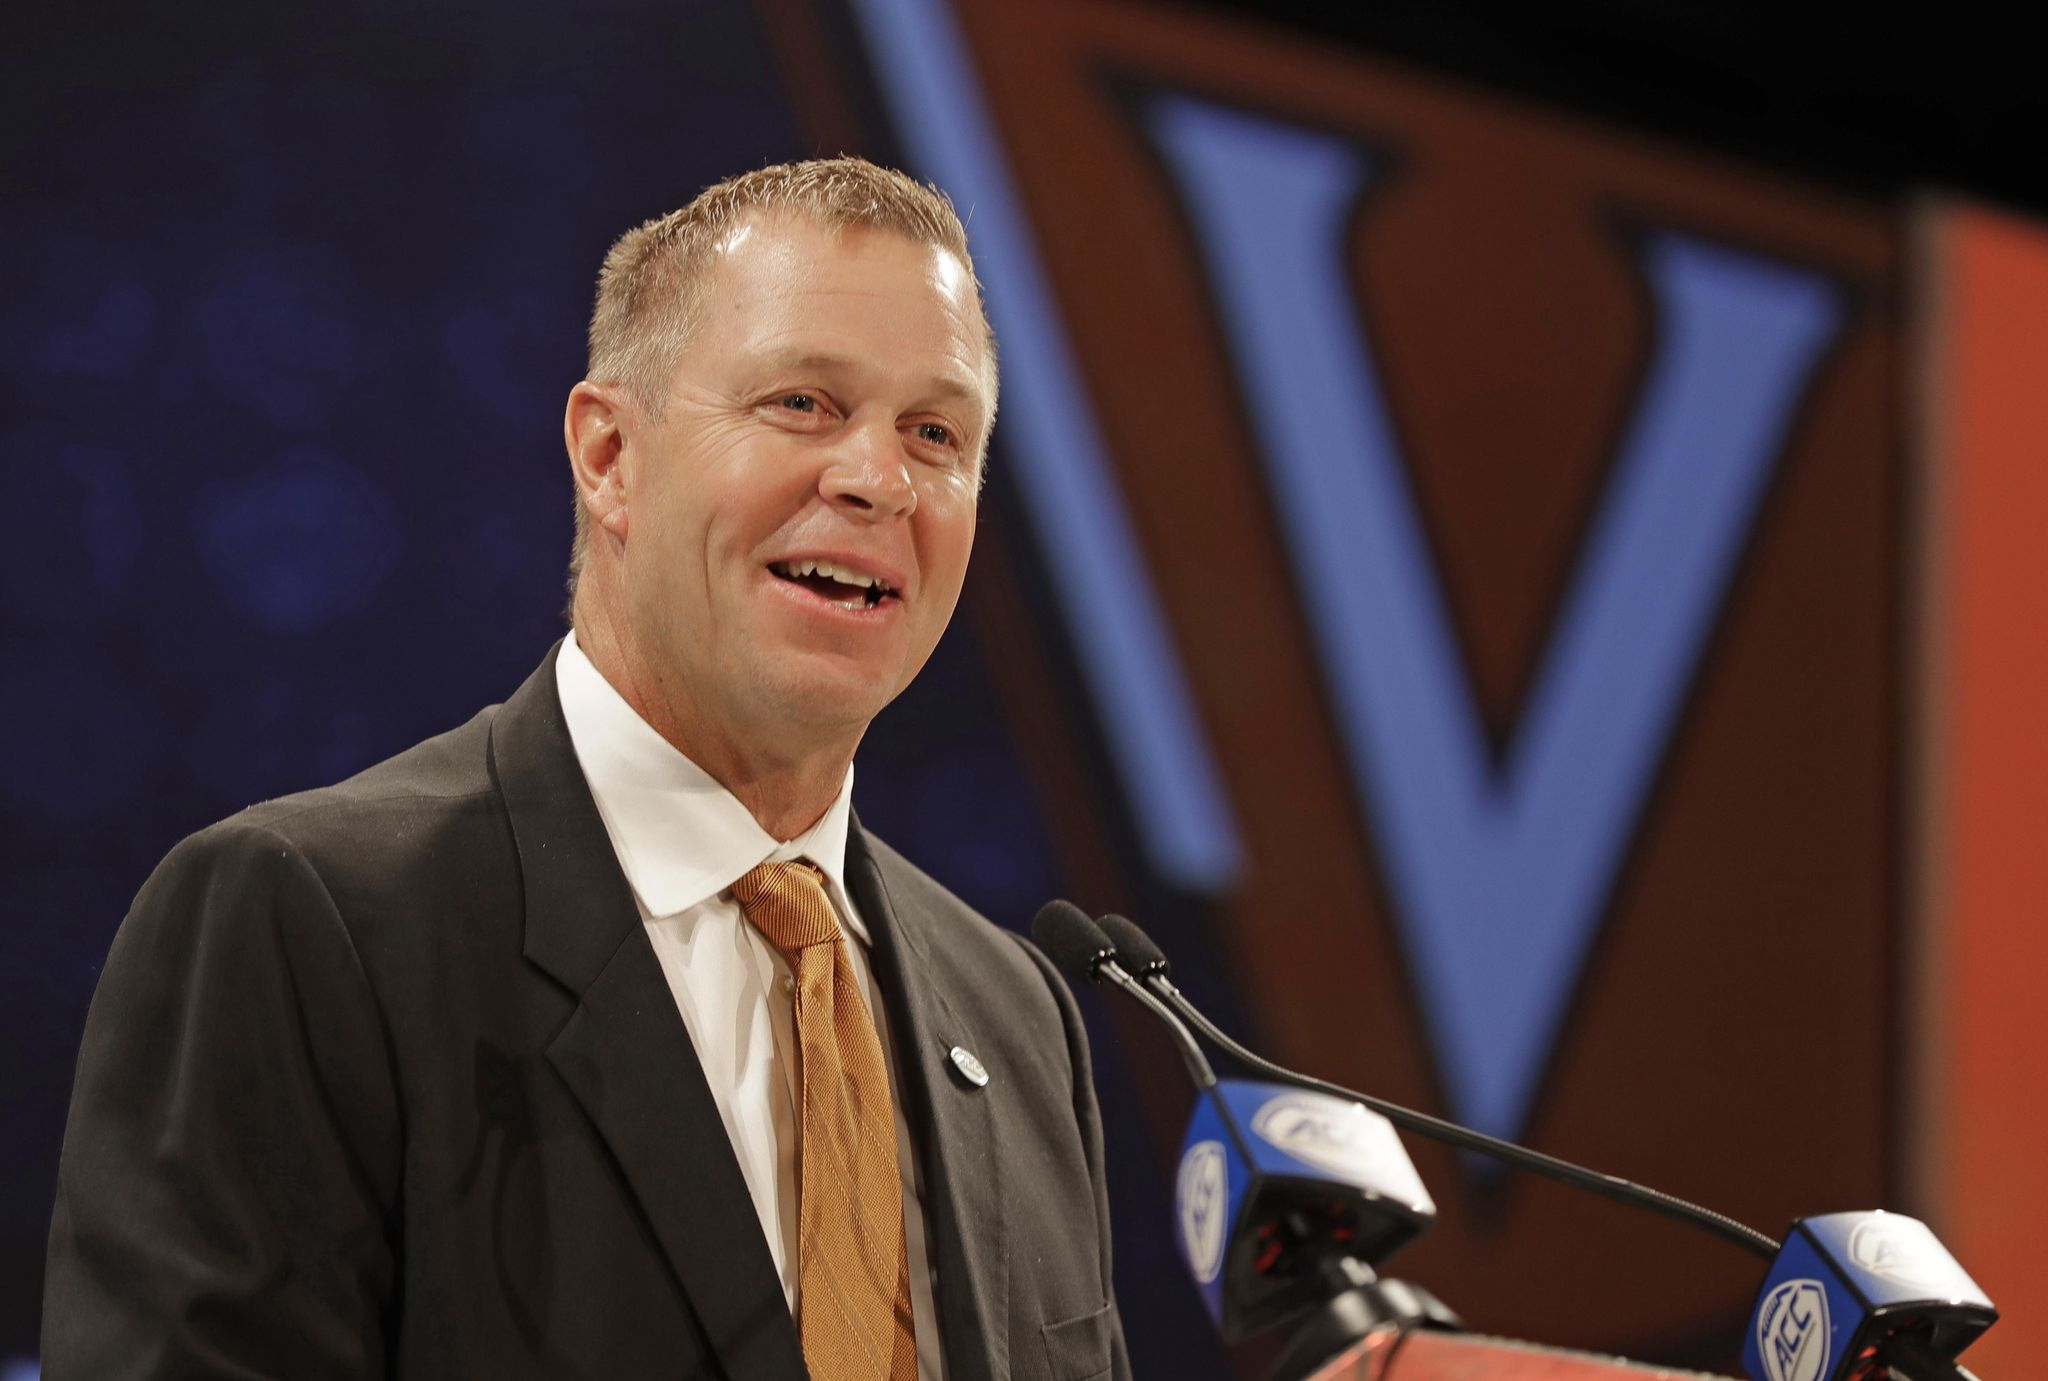 Bronco Mendenhall pledges $500,000 to Virginia fundraising project - Washington ...